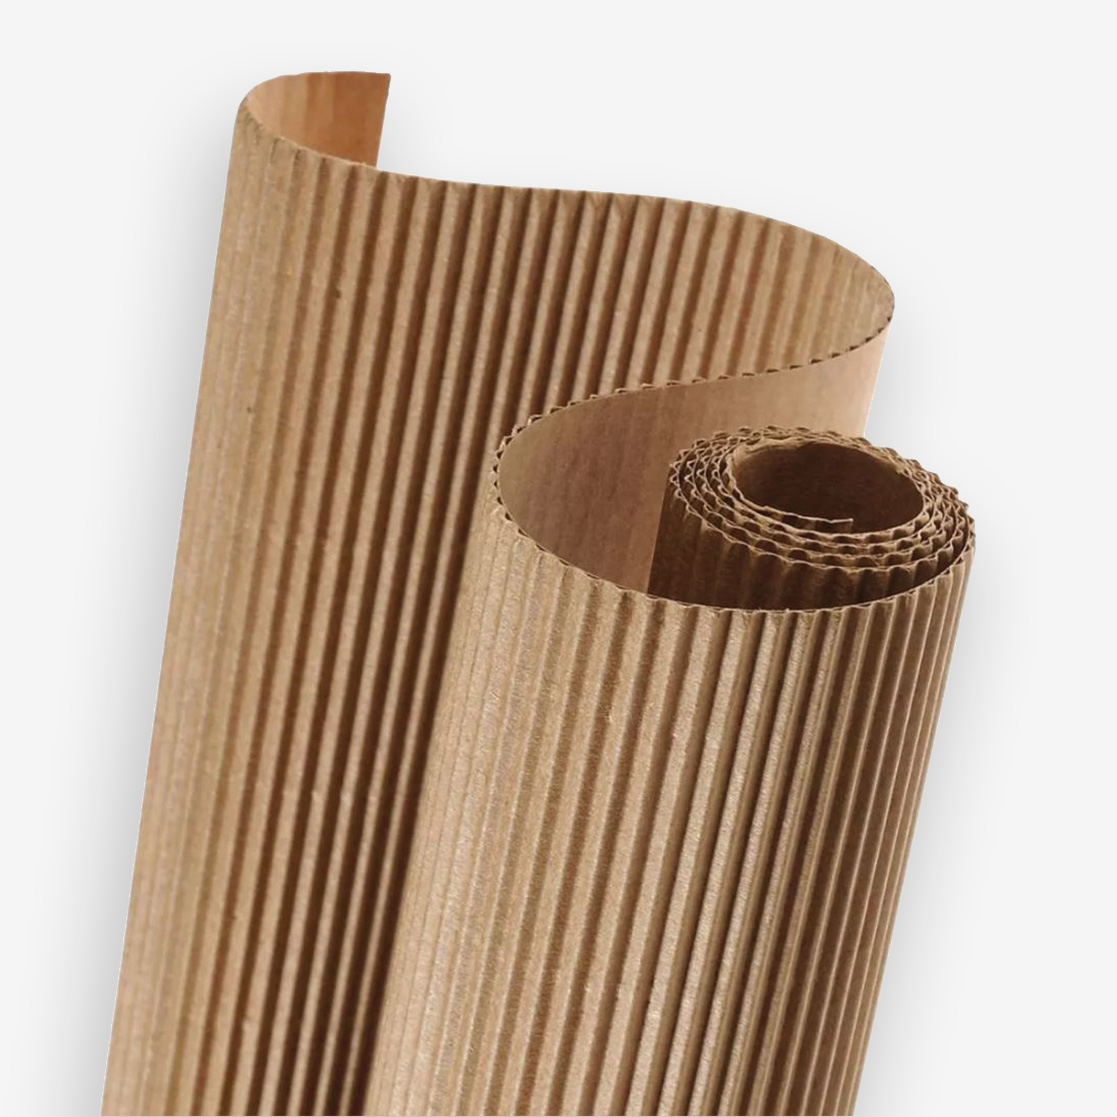 Cardboard/Paper Packaging